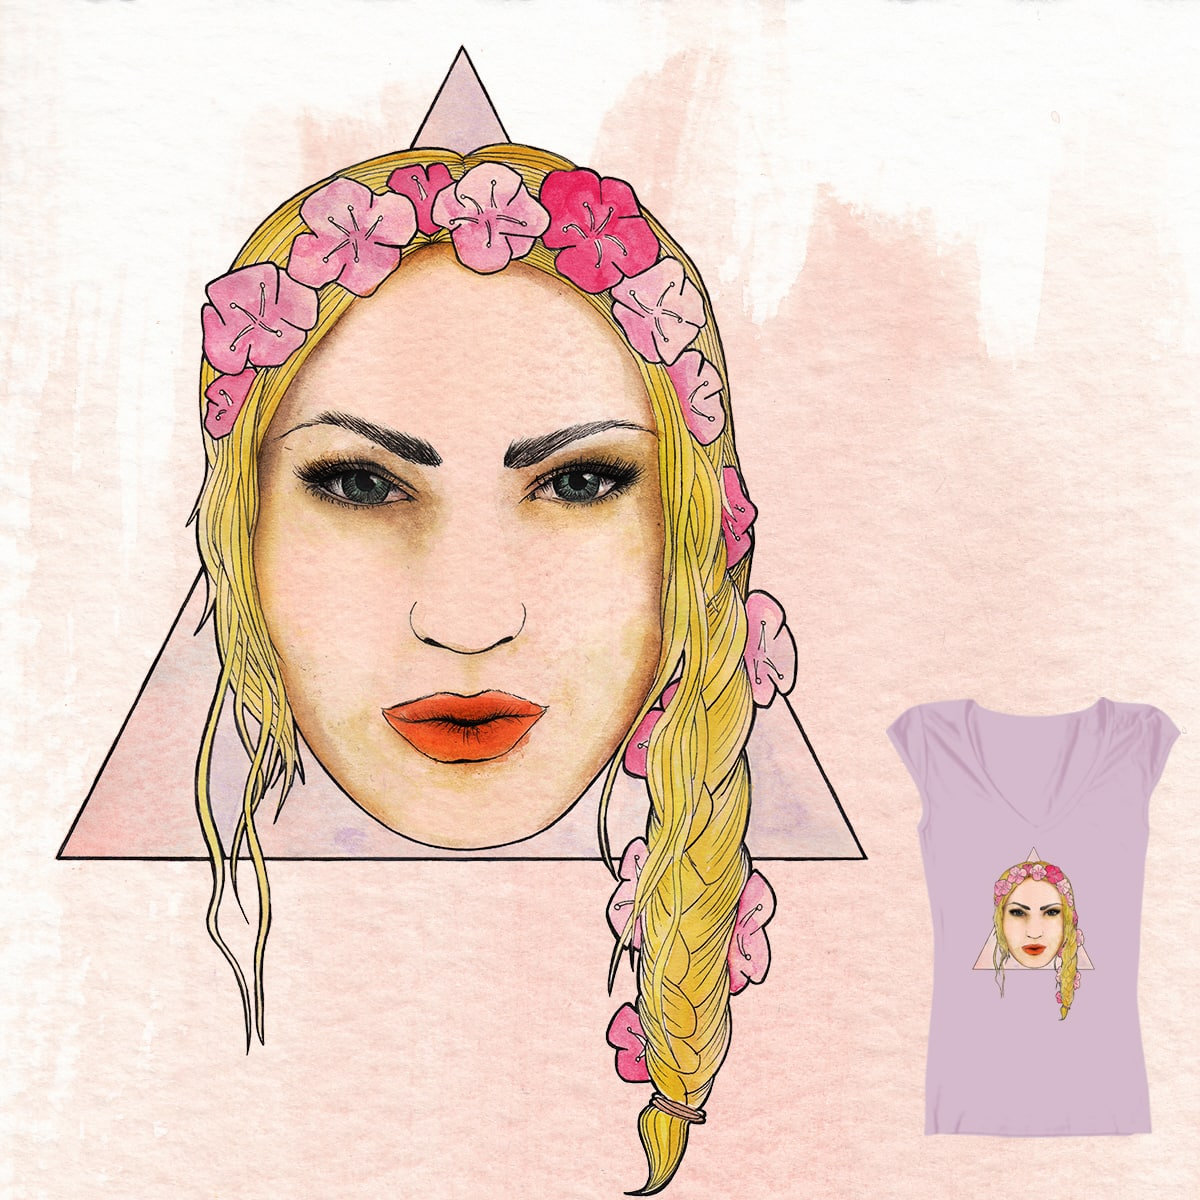 Gypsy Nouveau by angelsallfire on Threadless